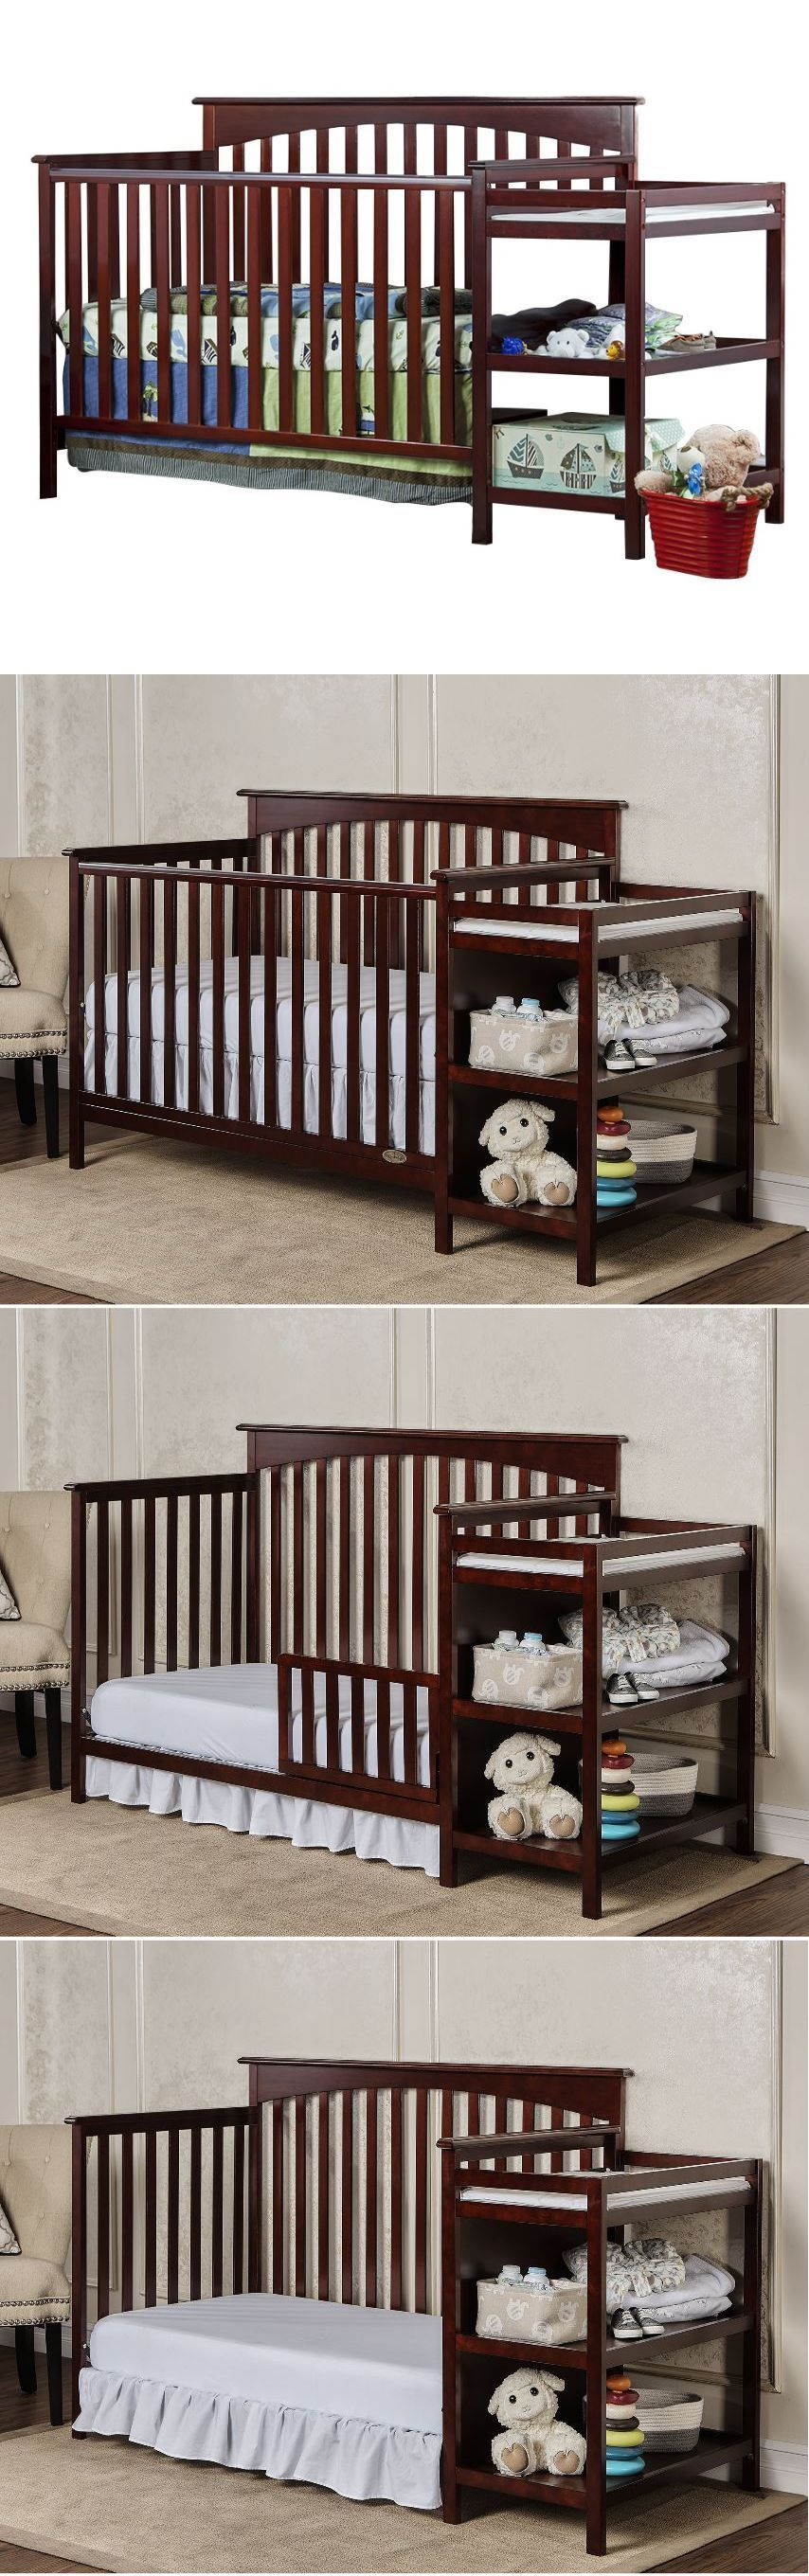 Baby Nursery: Baby Crib With Changing Table Nursery Furniture ...